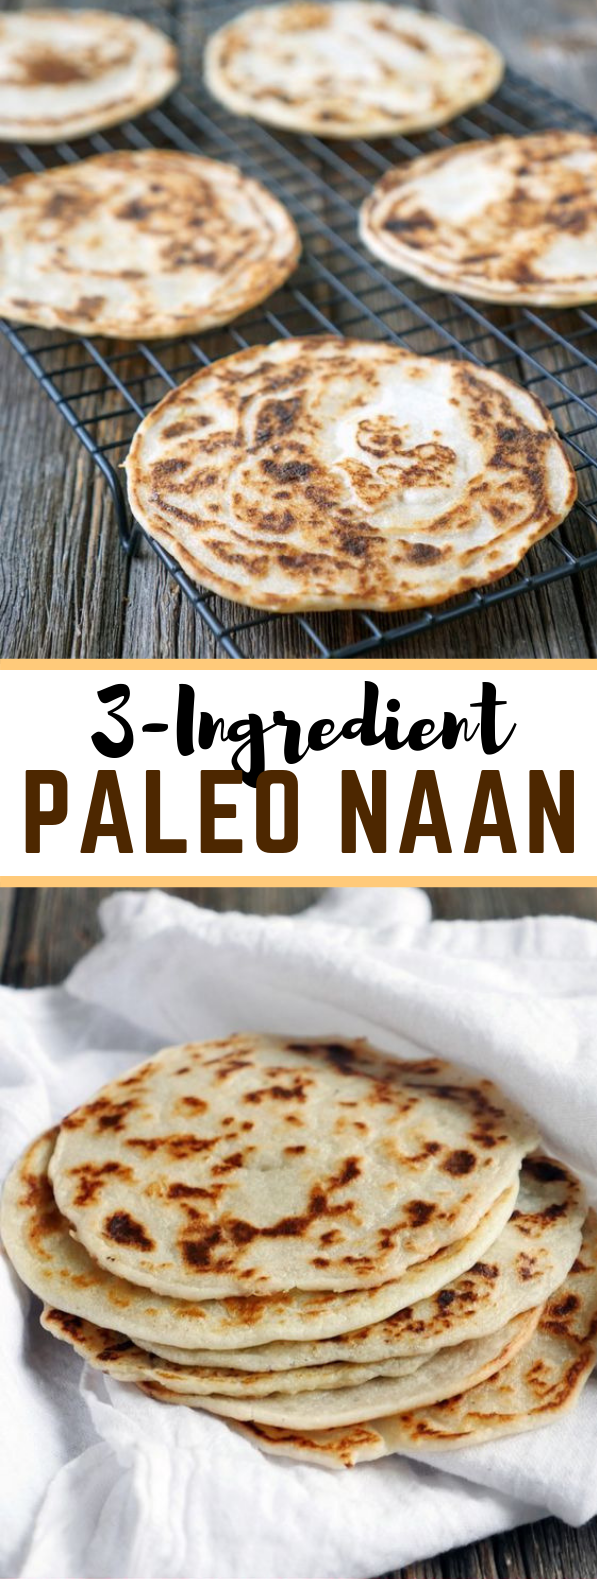 3 Ingredient Paleo Naan (Indian bread) #diet #lowcarb